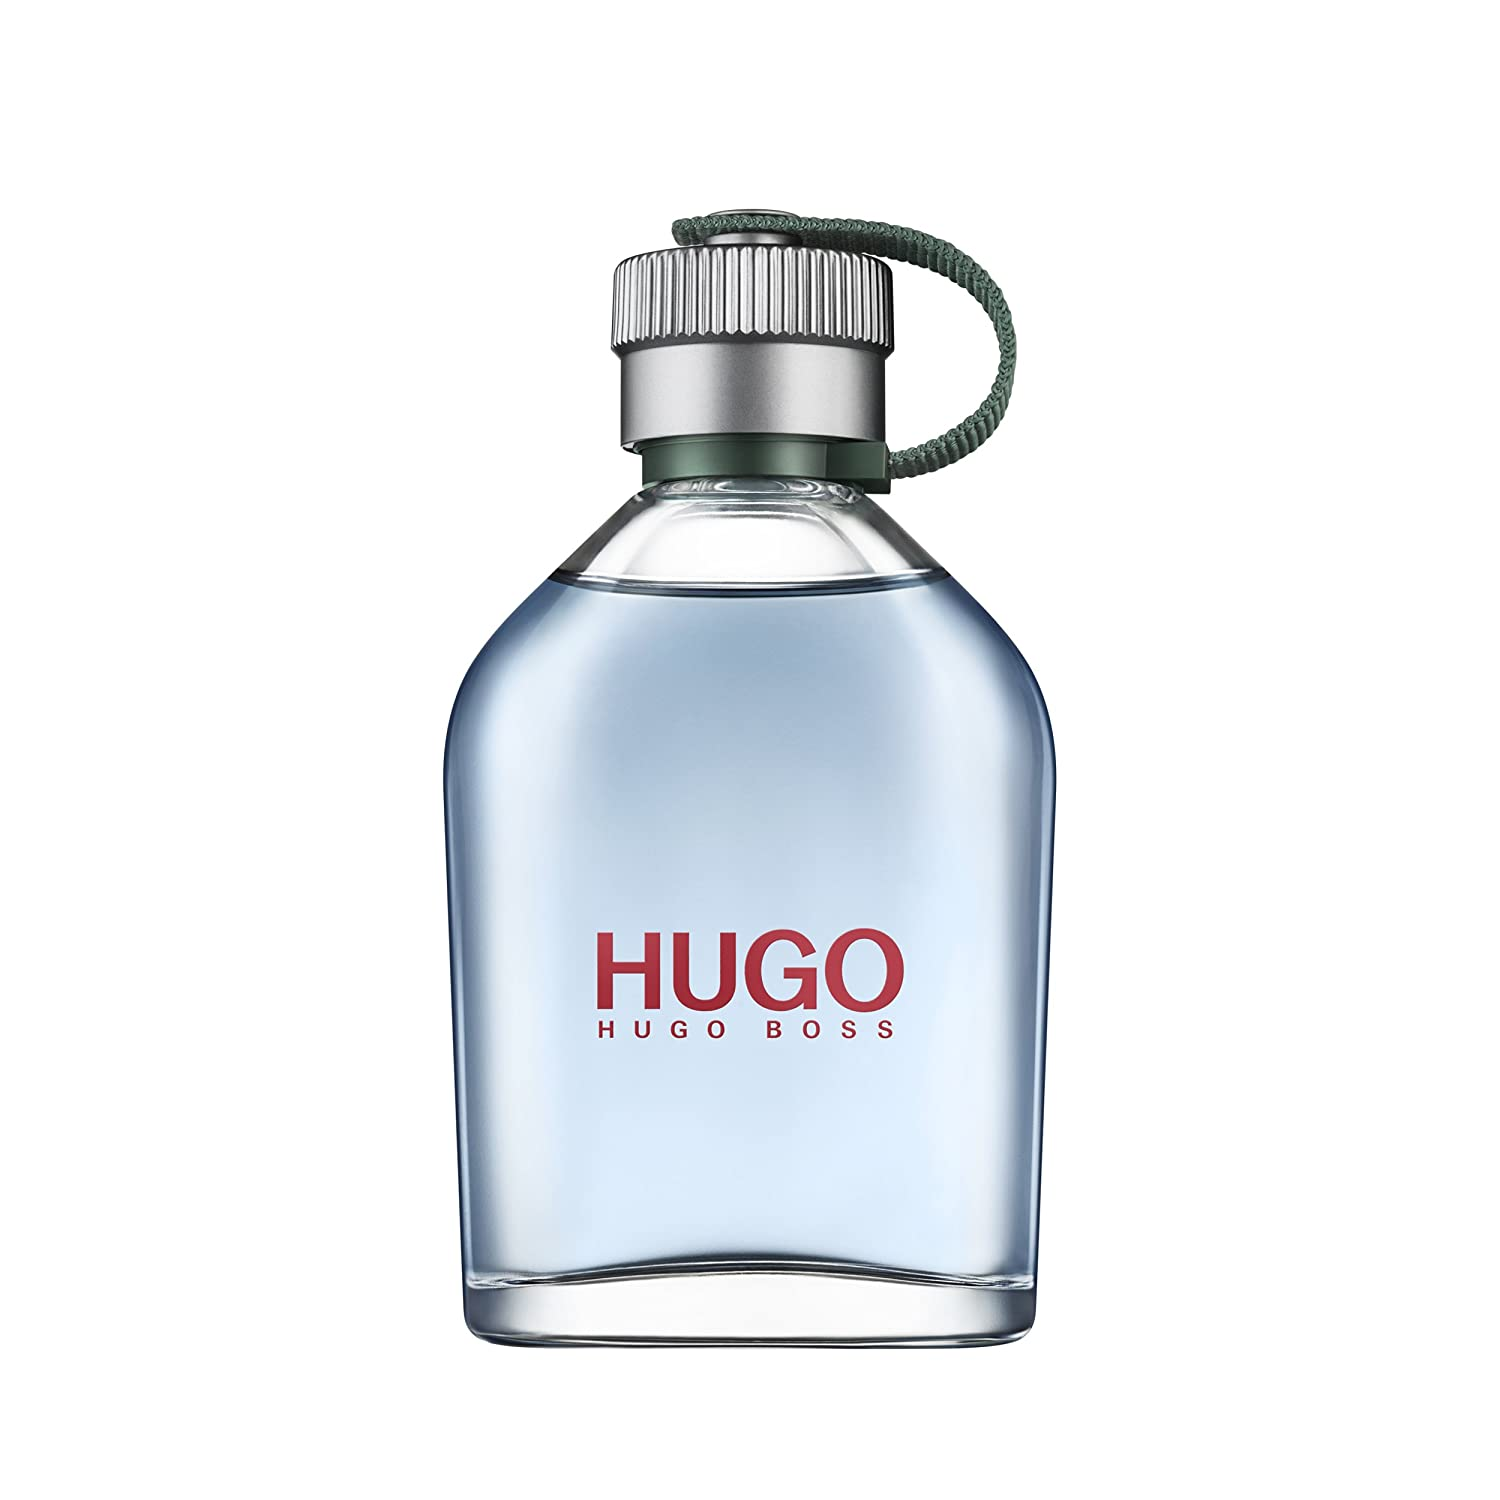 Hugo Boss Man Eau De Toilette for Men, 125 ml dfa4a355d3bf